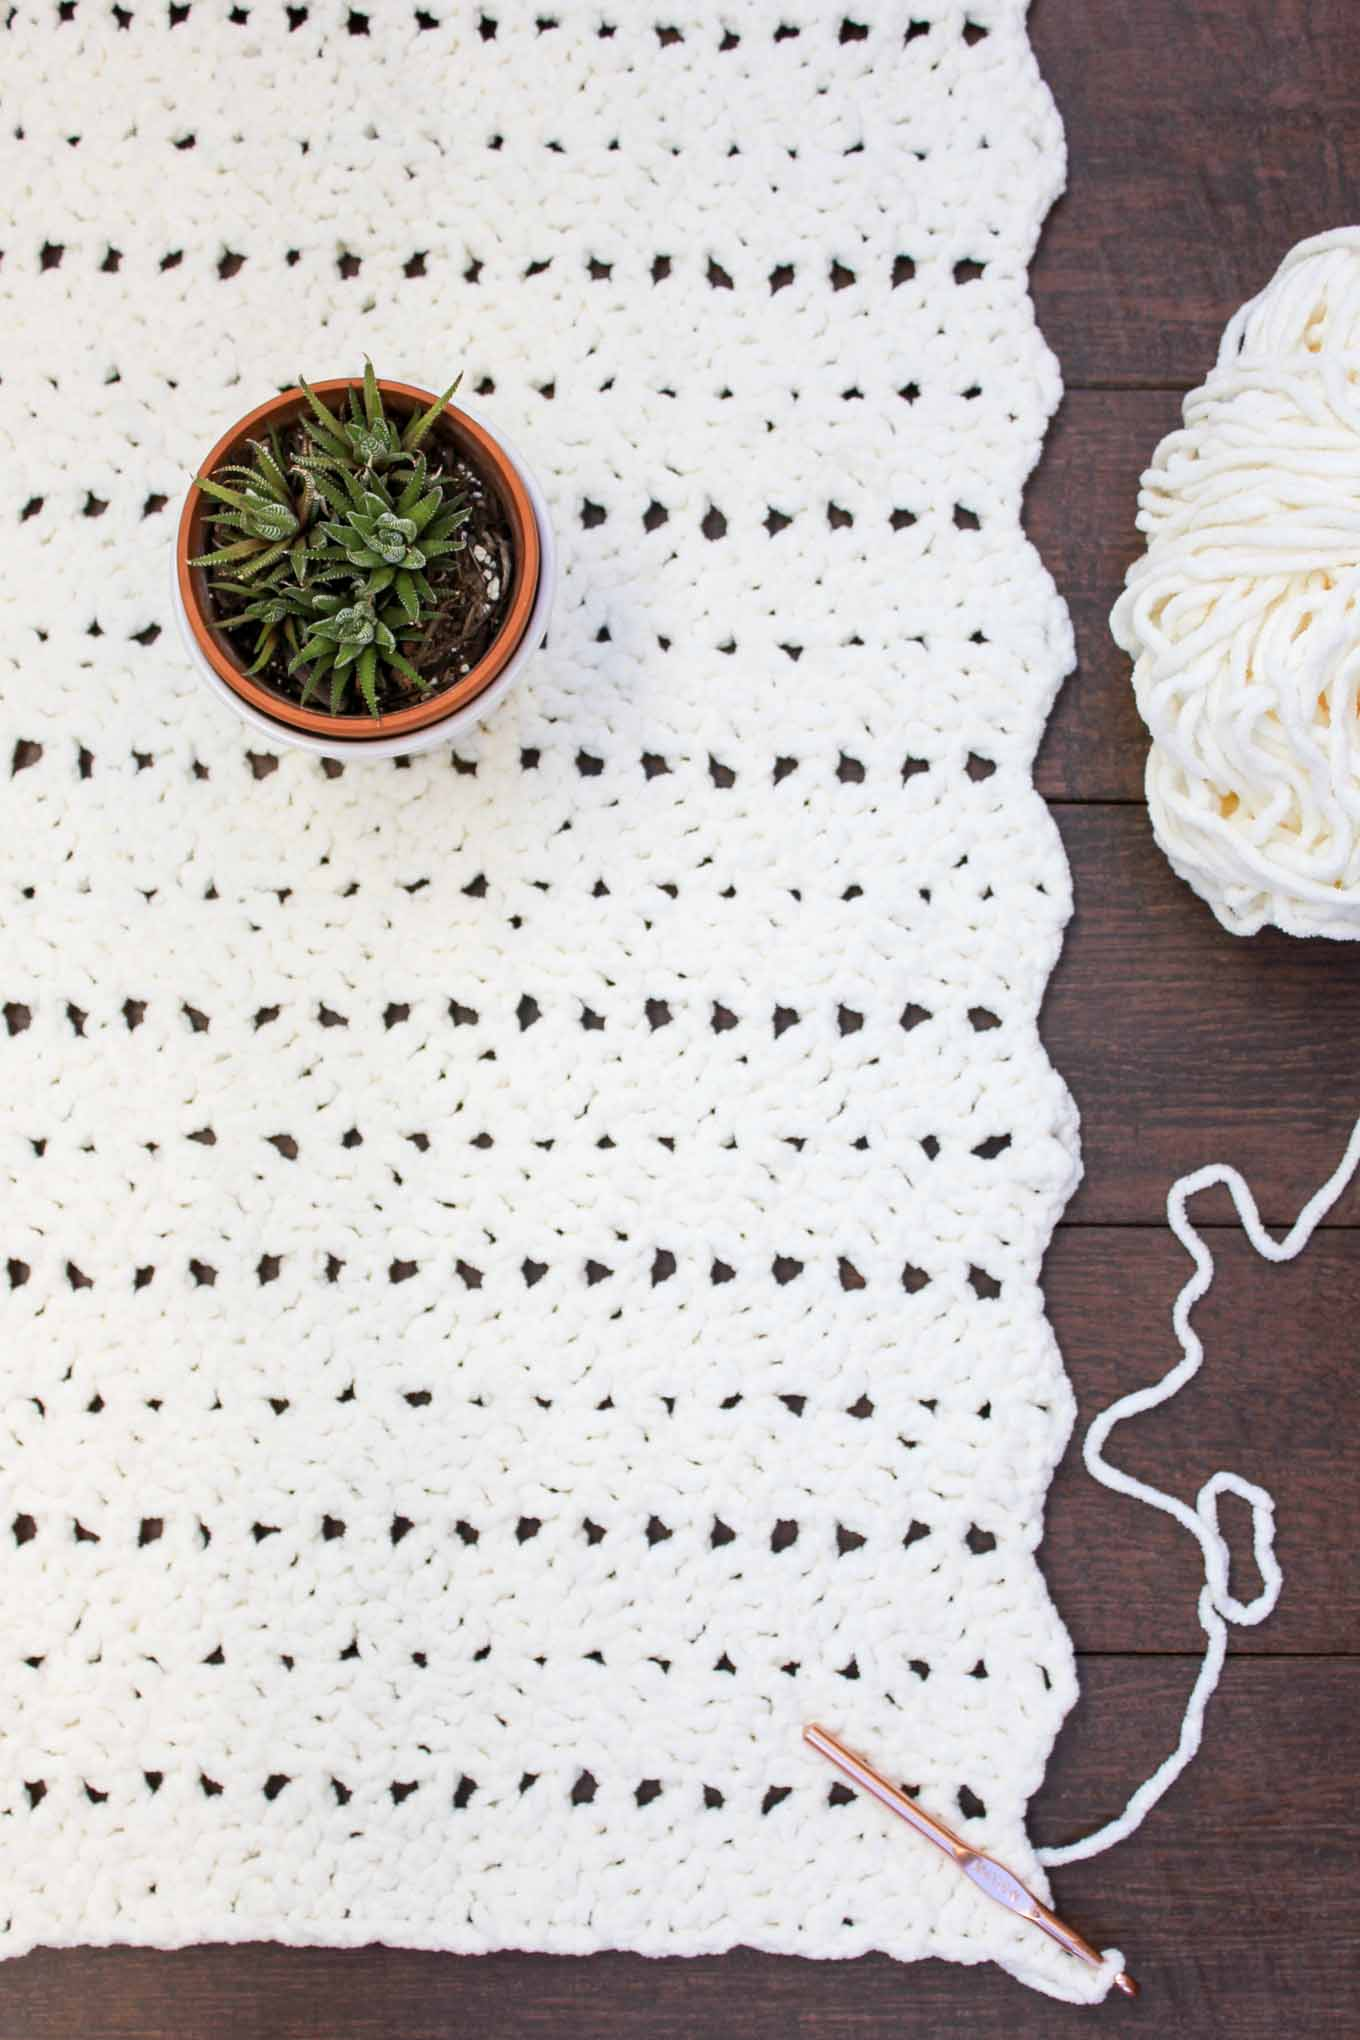 Crochet Stitches Chunky : This chunky crochet blanket pattern is great for beginners and works ...